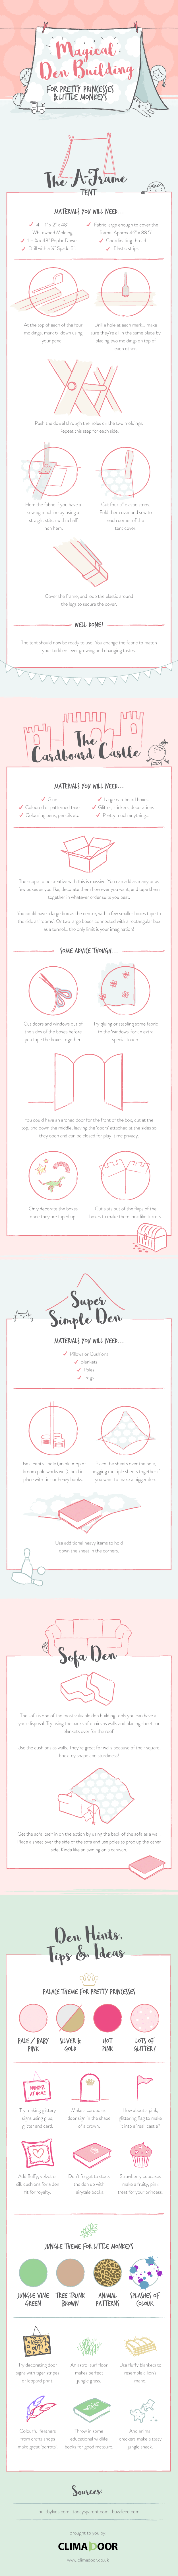 How to make a den infographic